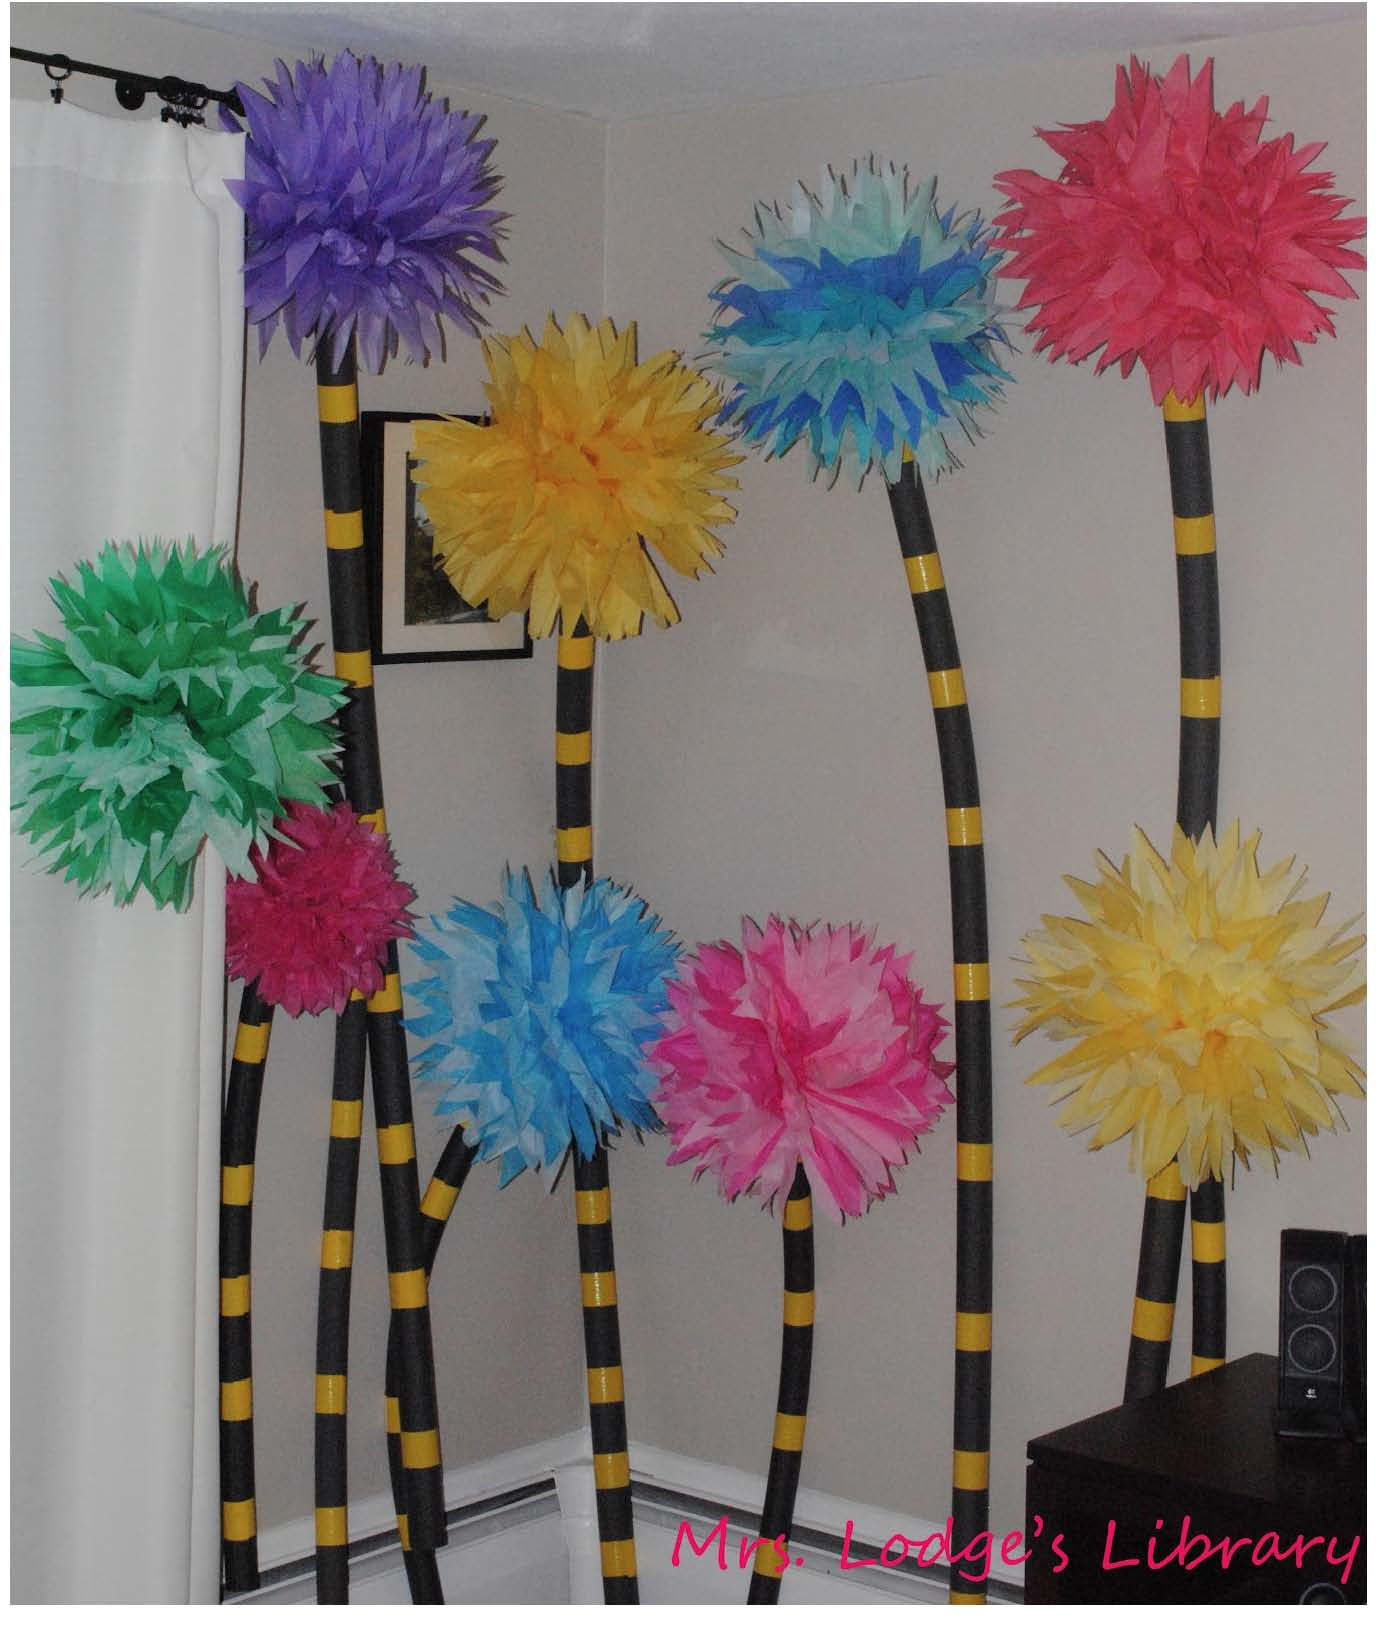 seuss activities, seuss lessons, lorax activities, lorax lessons, writing prompts for seuss, writing prompts for lorax, writing prompts for march, writing prompts for spring, writing prompts for conservation day, lorax mustache template, spring bulletin boards, writing prompt bulletin boards, march bulletin boards, seuss bulletin boards, truffula pencils, truffula trees, how to make a truffula tree, march is reading month bulletin boards,